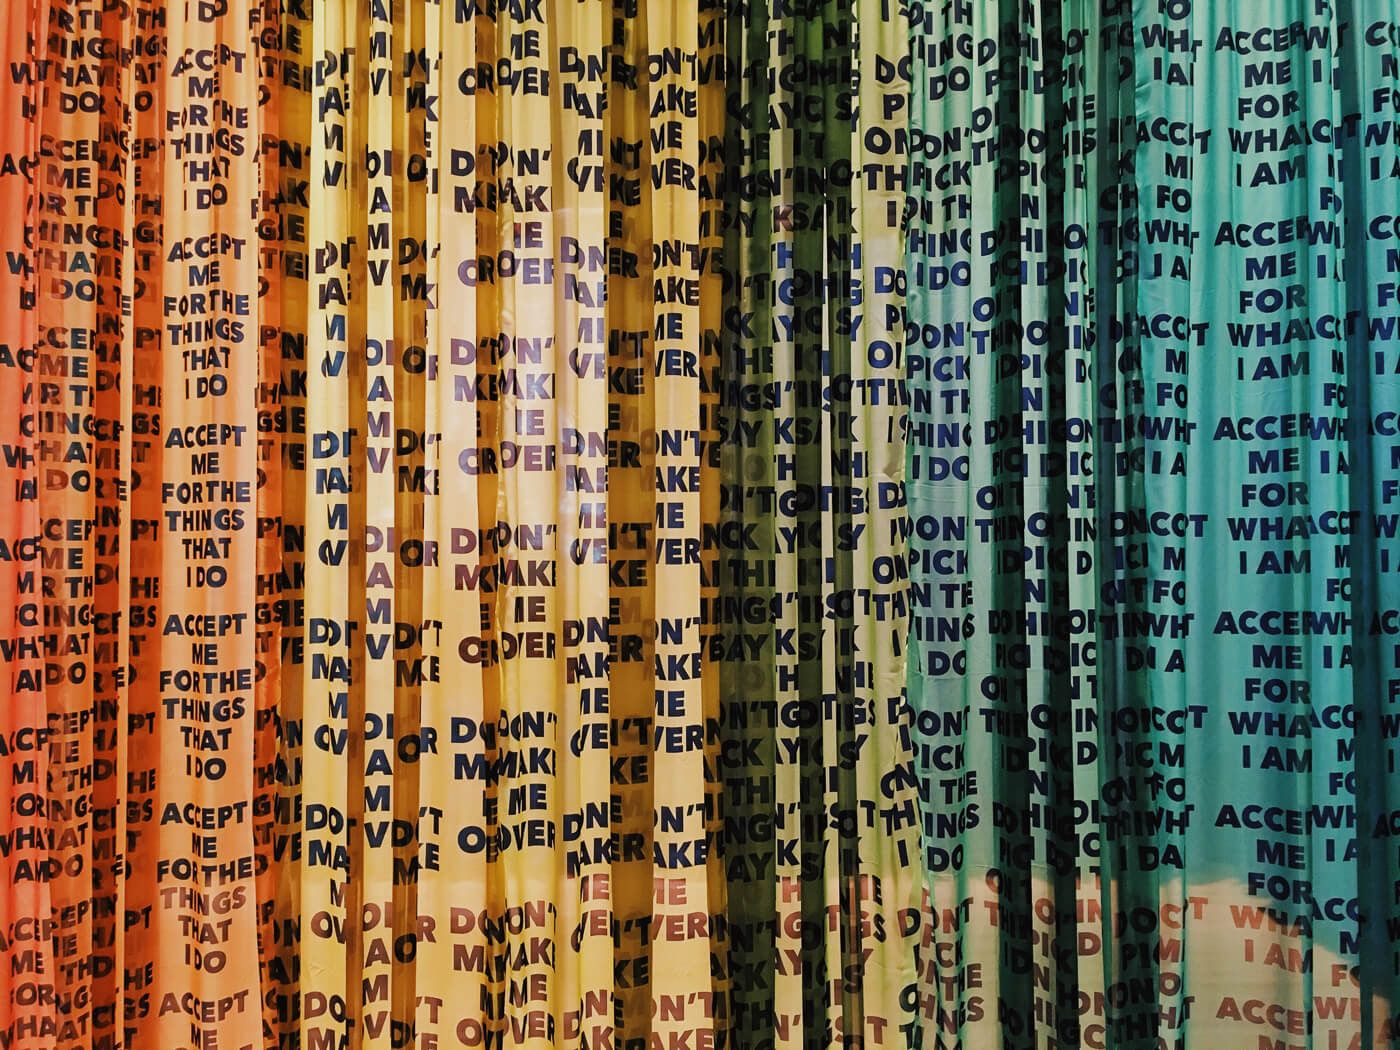 Thin vertical strips hanging with words written on them. The strips form a rainbow